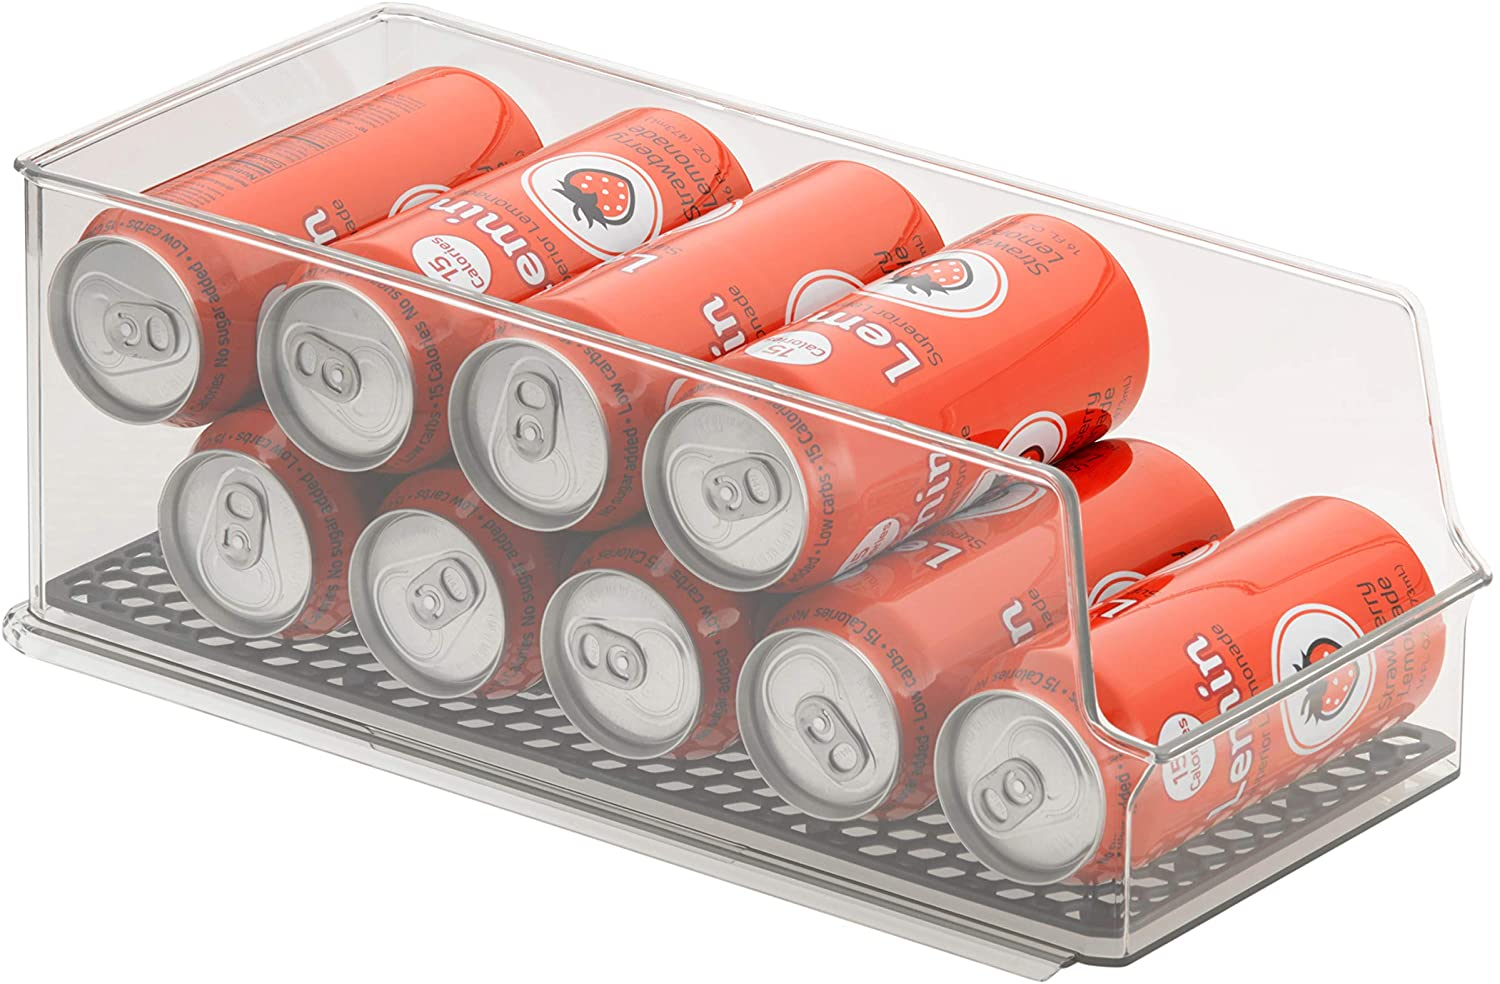 Spectrum Diversified Hexa in-Fridge Bin, Tall Holder Dispenser Rack for Storage and Organization, Holds Drink Cans, Meats, Produce, and More, Clear